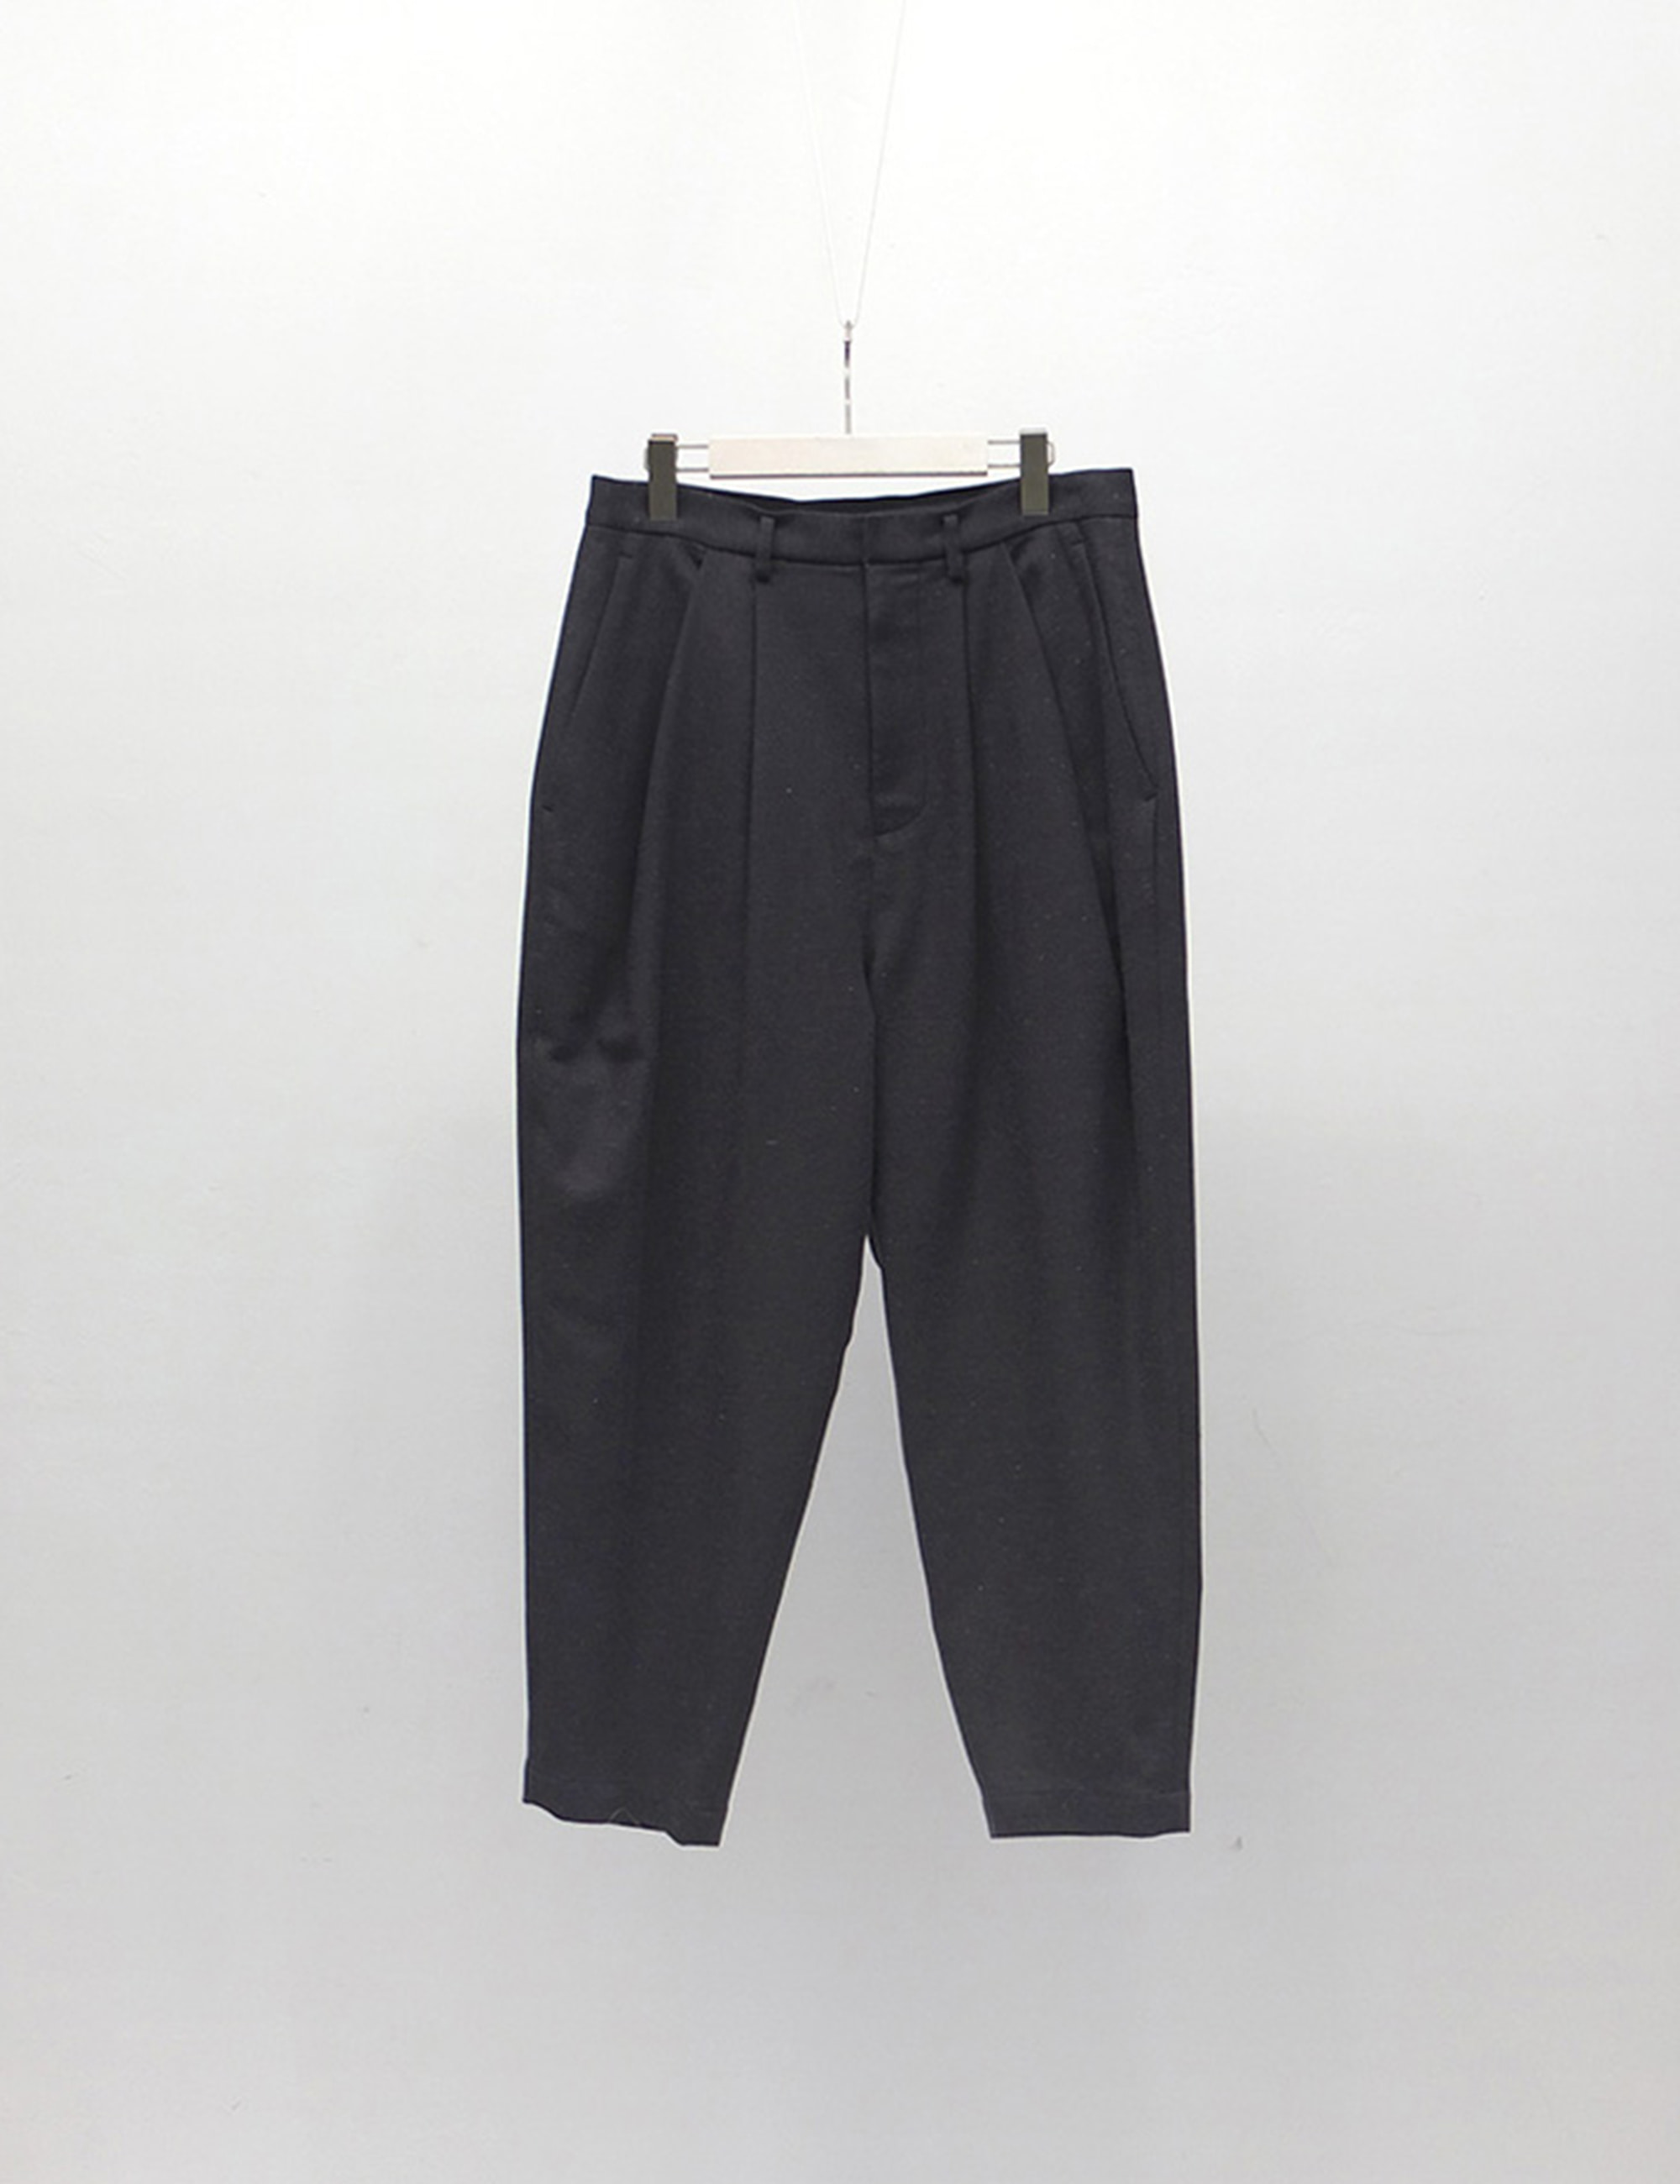 NEP TWILL PANTS_CHARCOAL GRAY